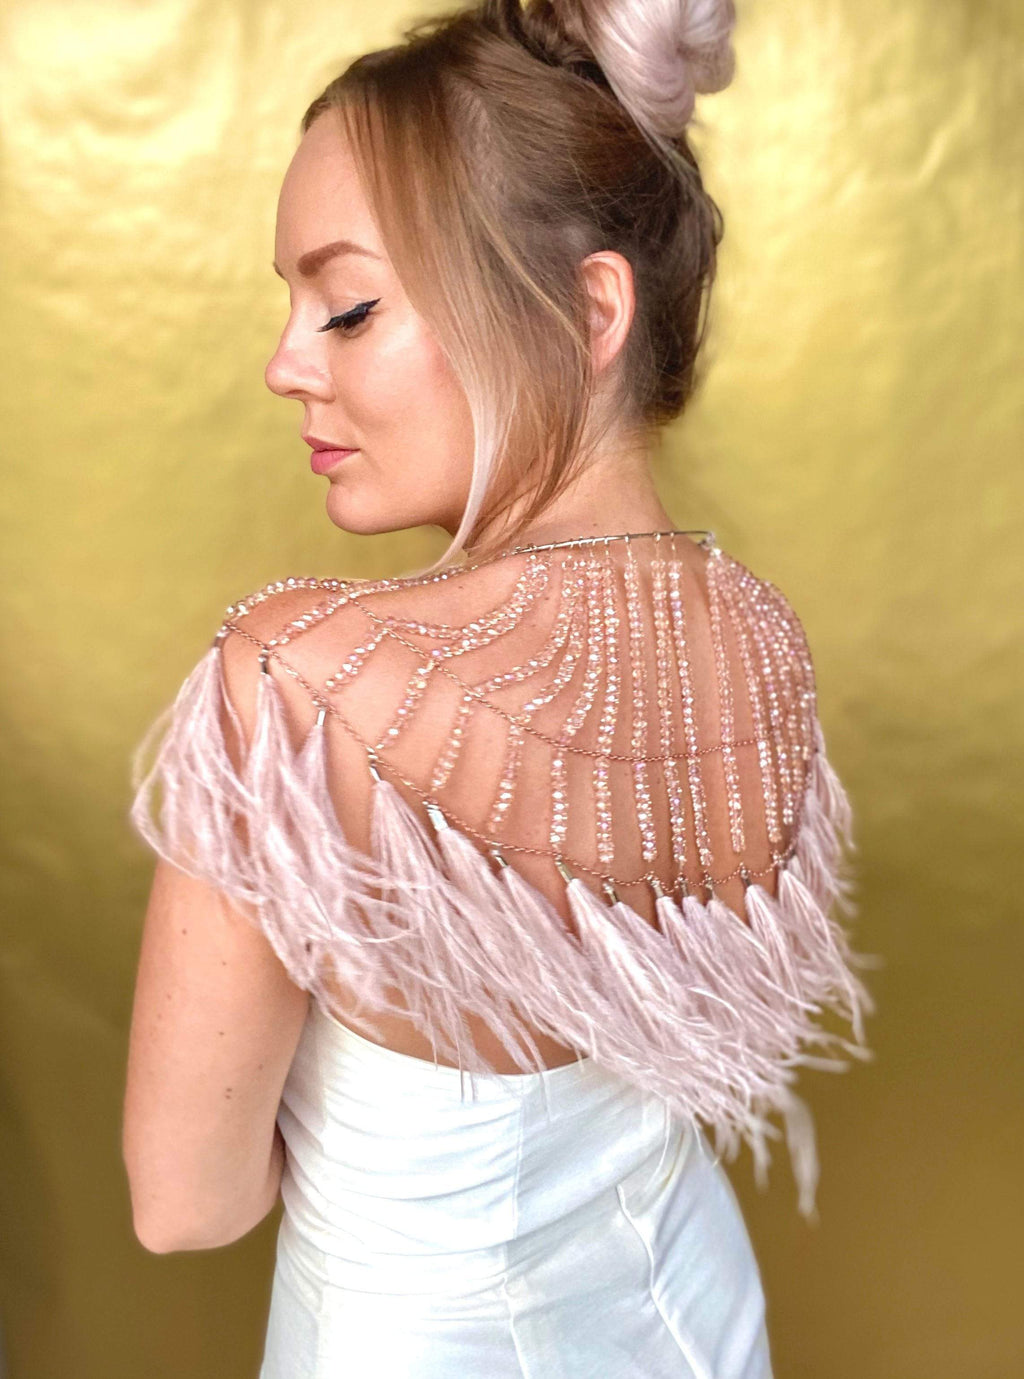 Bridal Wedding and Festival Crystal and Feather Cape